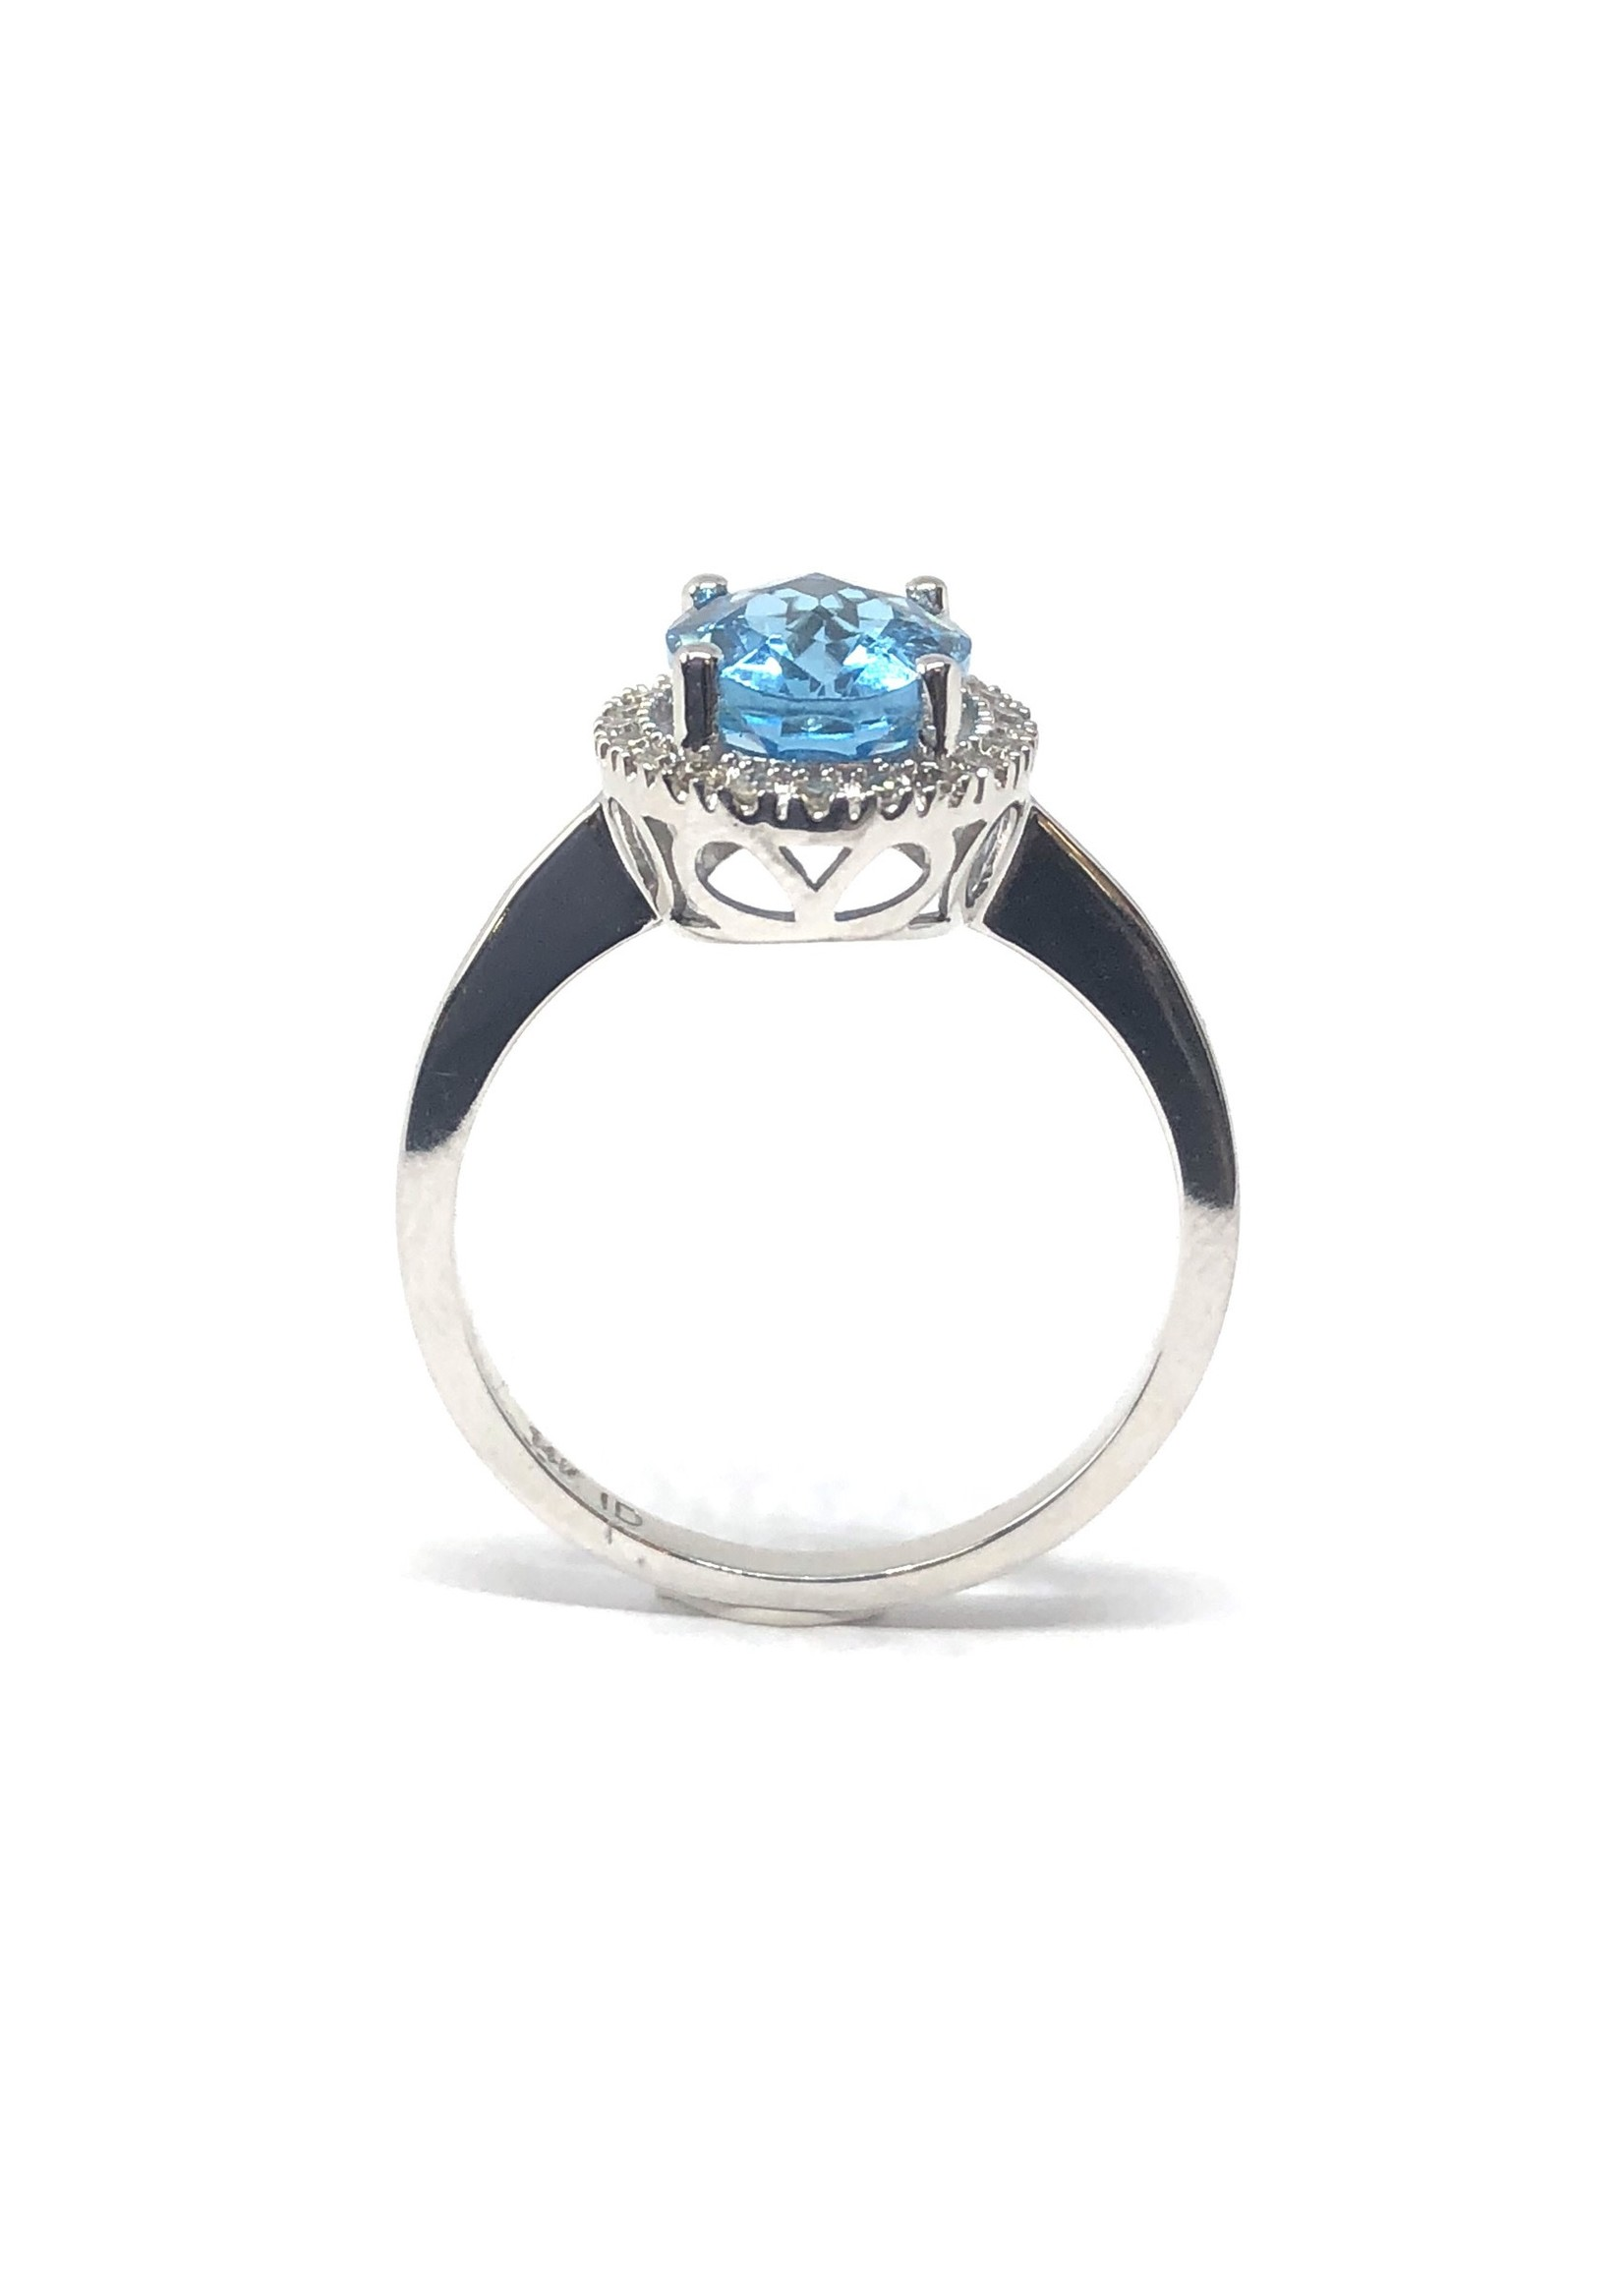 PARÉ Bague Halo Topaz bleu Or blanc 14K avec Diamants